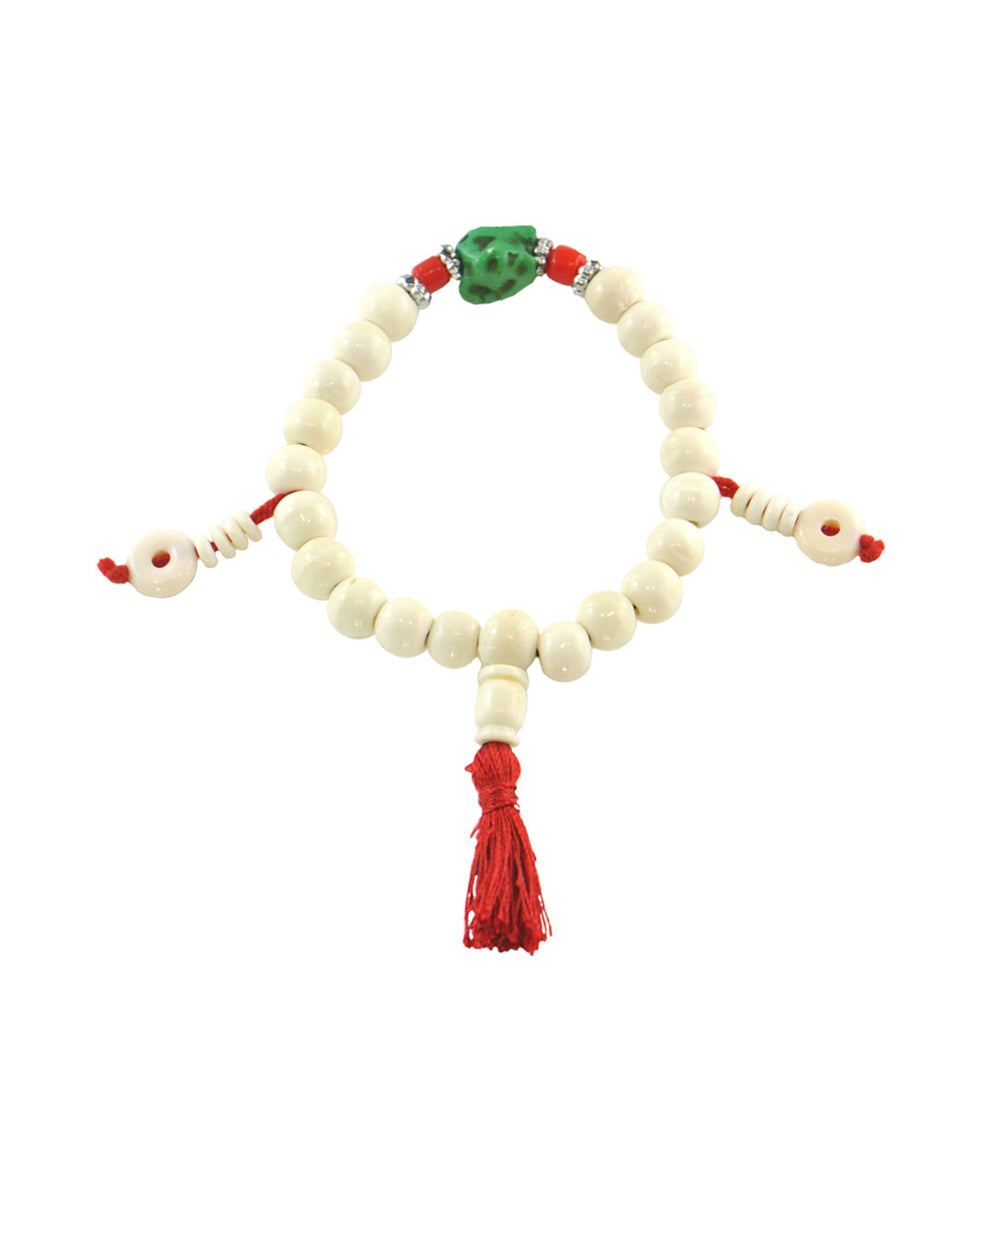 Buddhist Meditation White Yak Bone Beads Wrist Mala